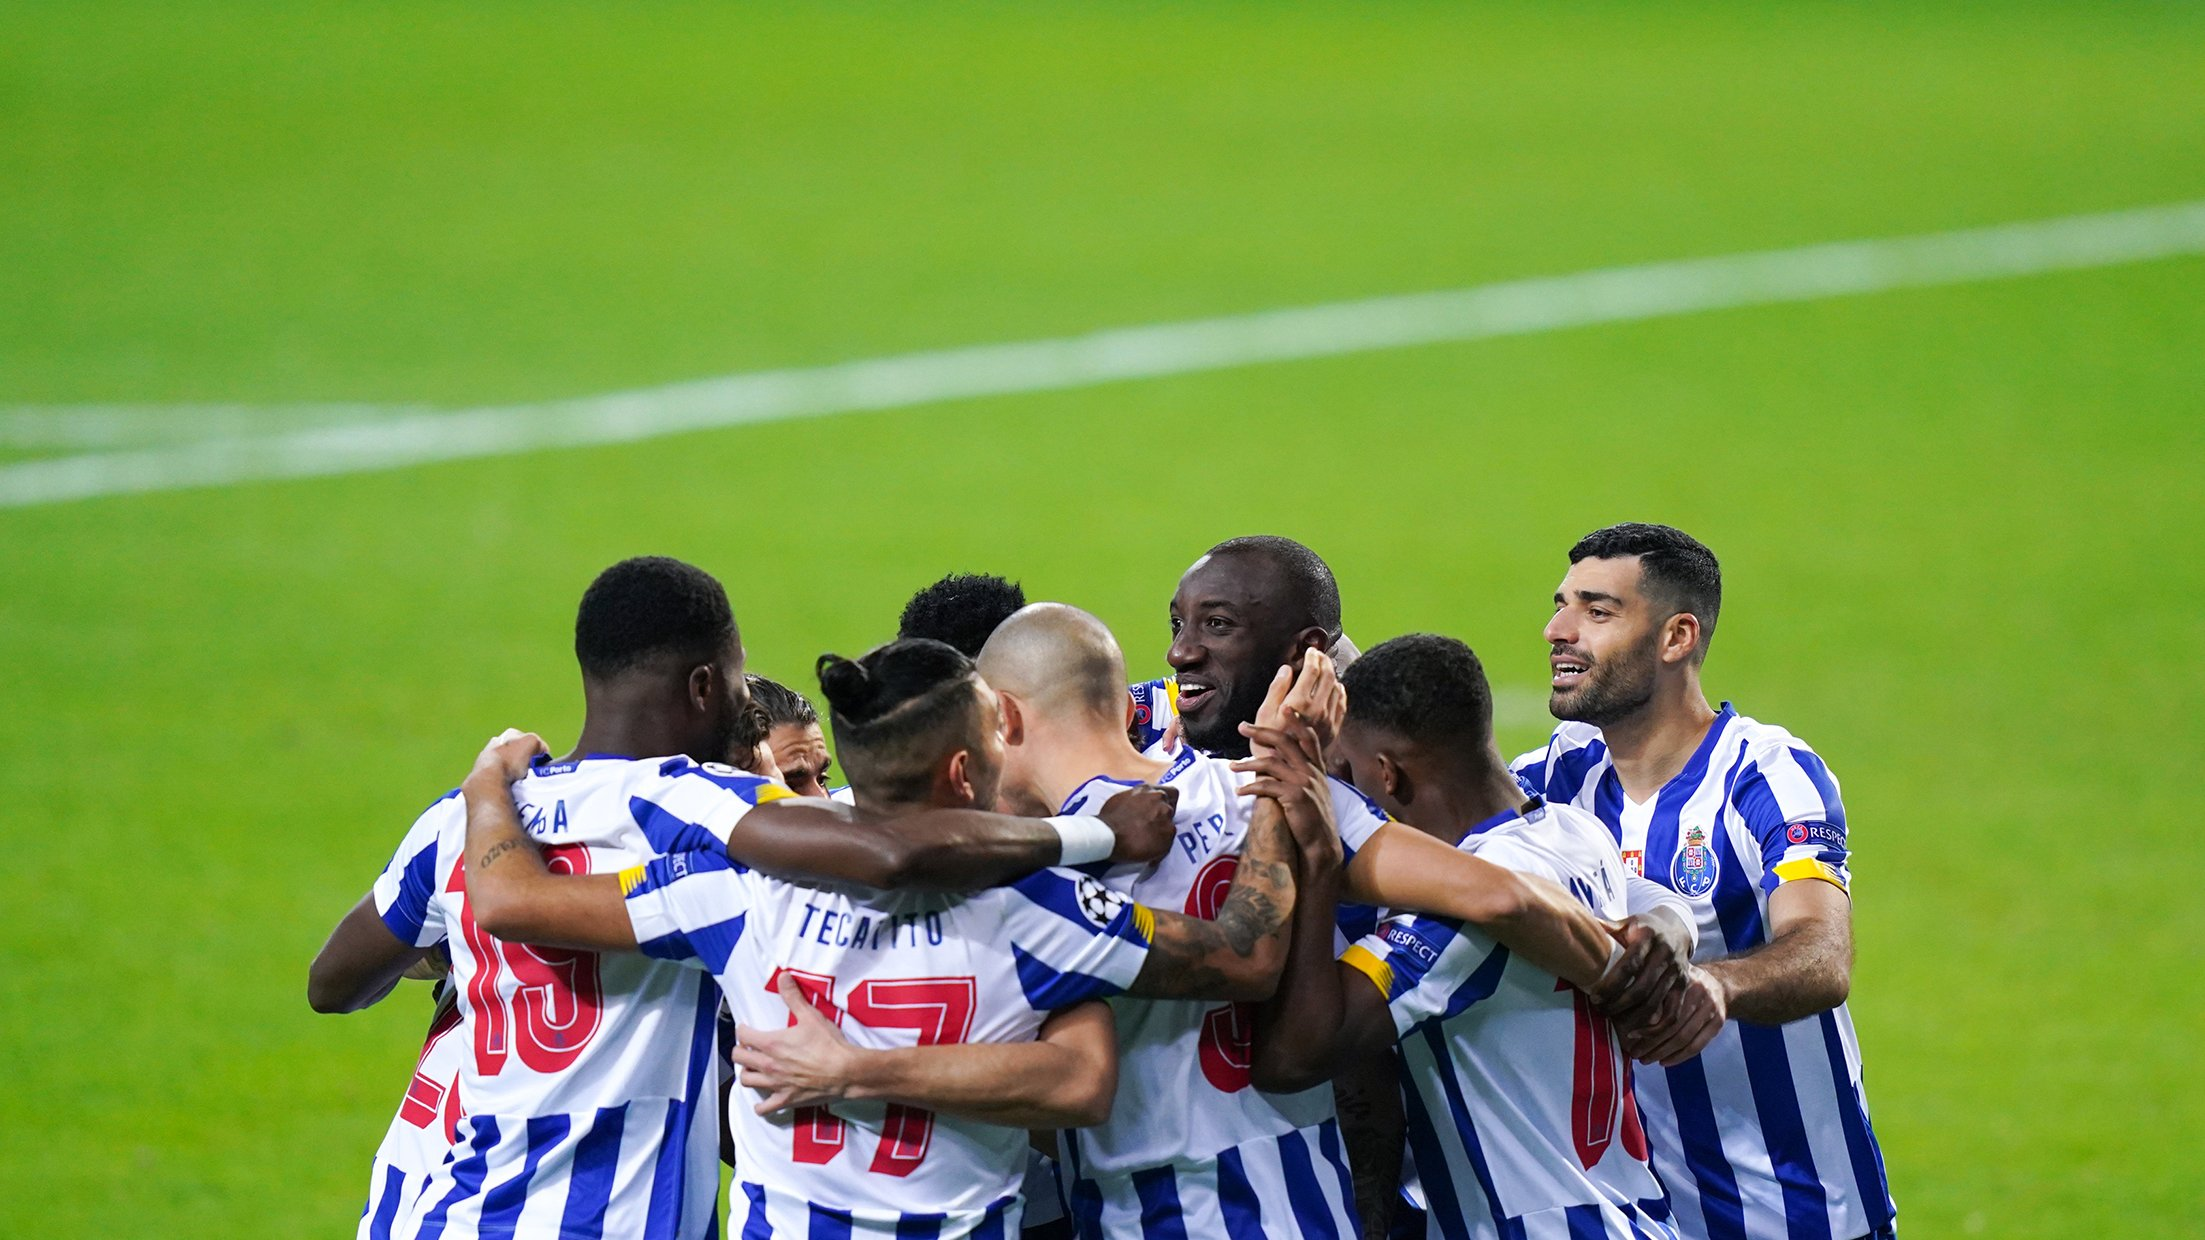 FC Porto celebrates in their win in the reverse fixture against Juventus